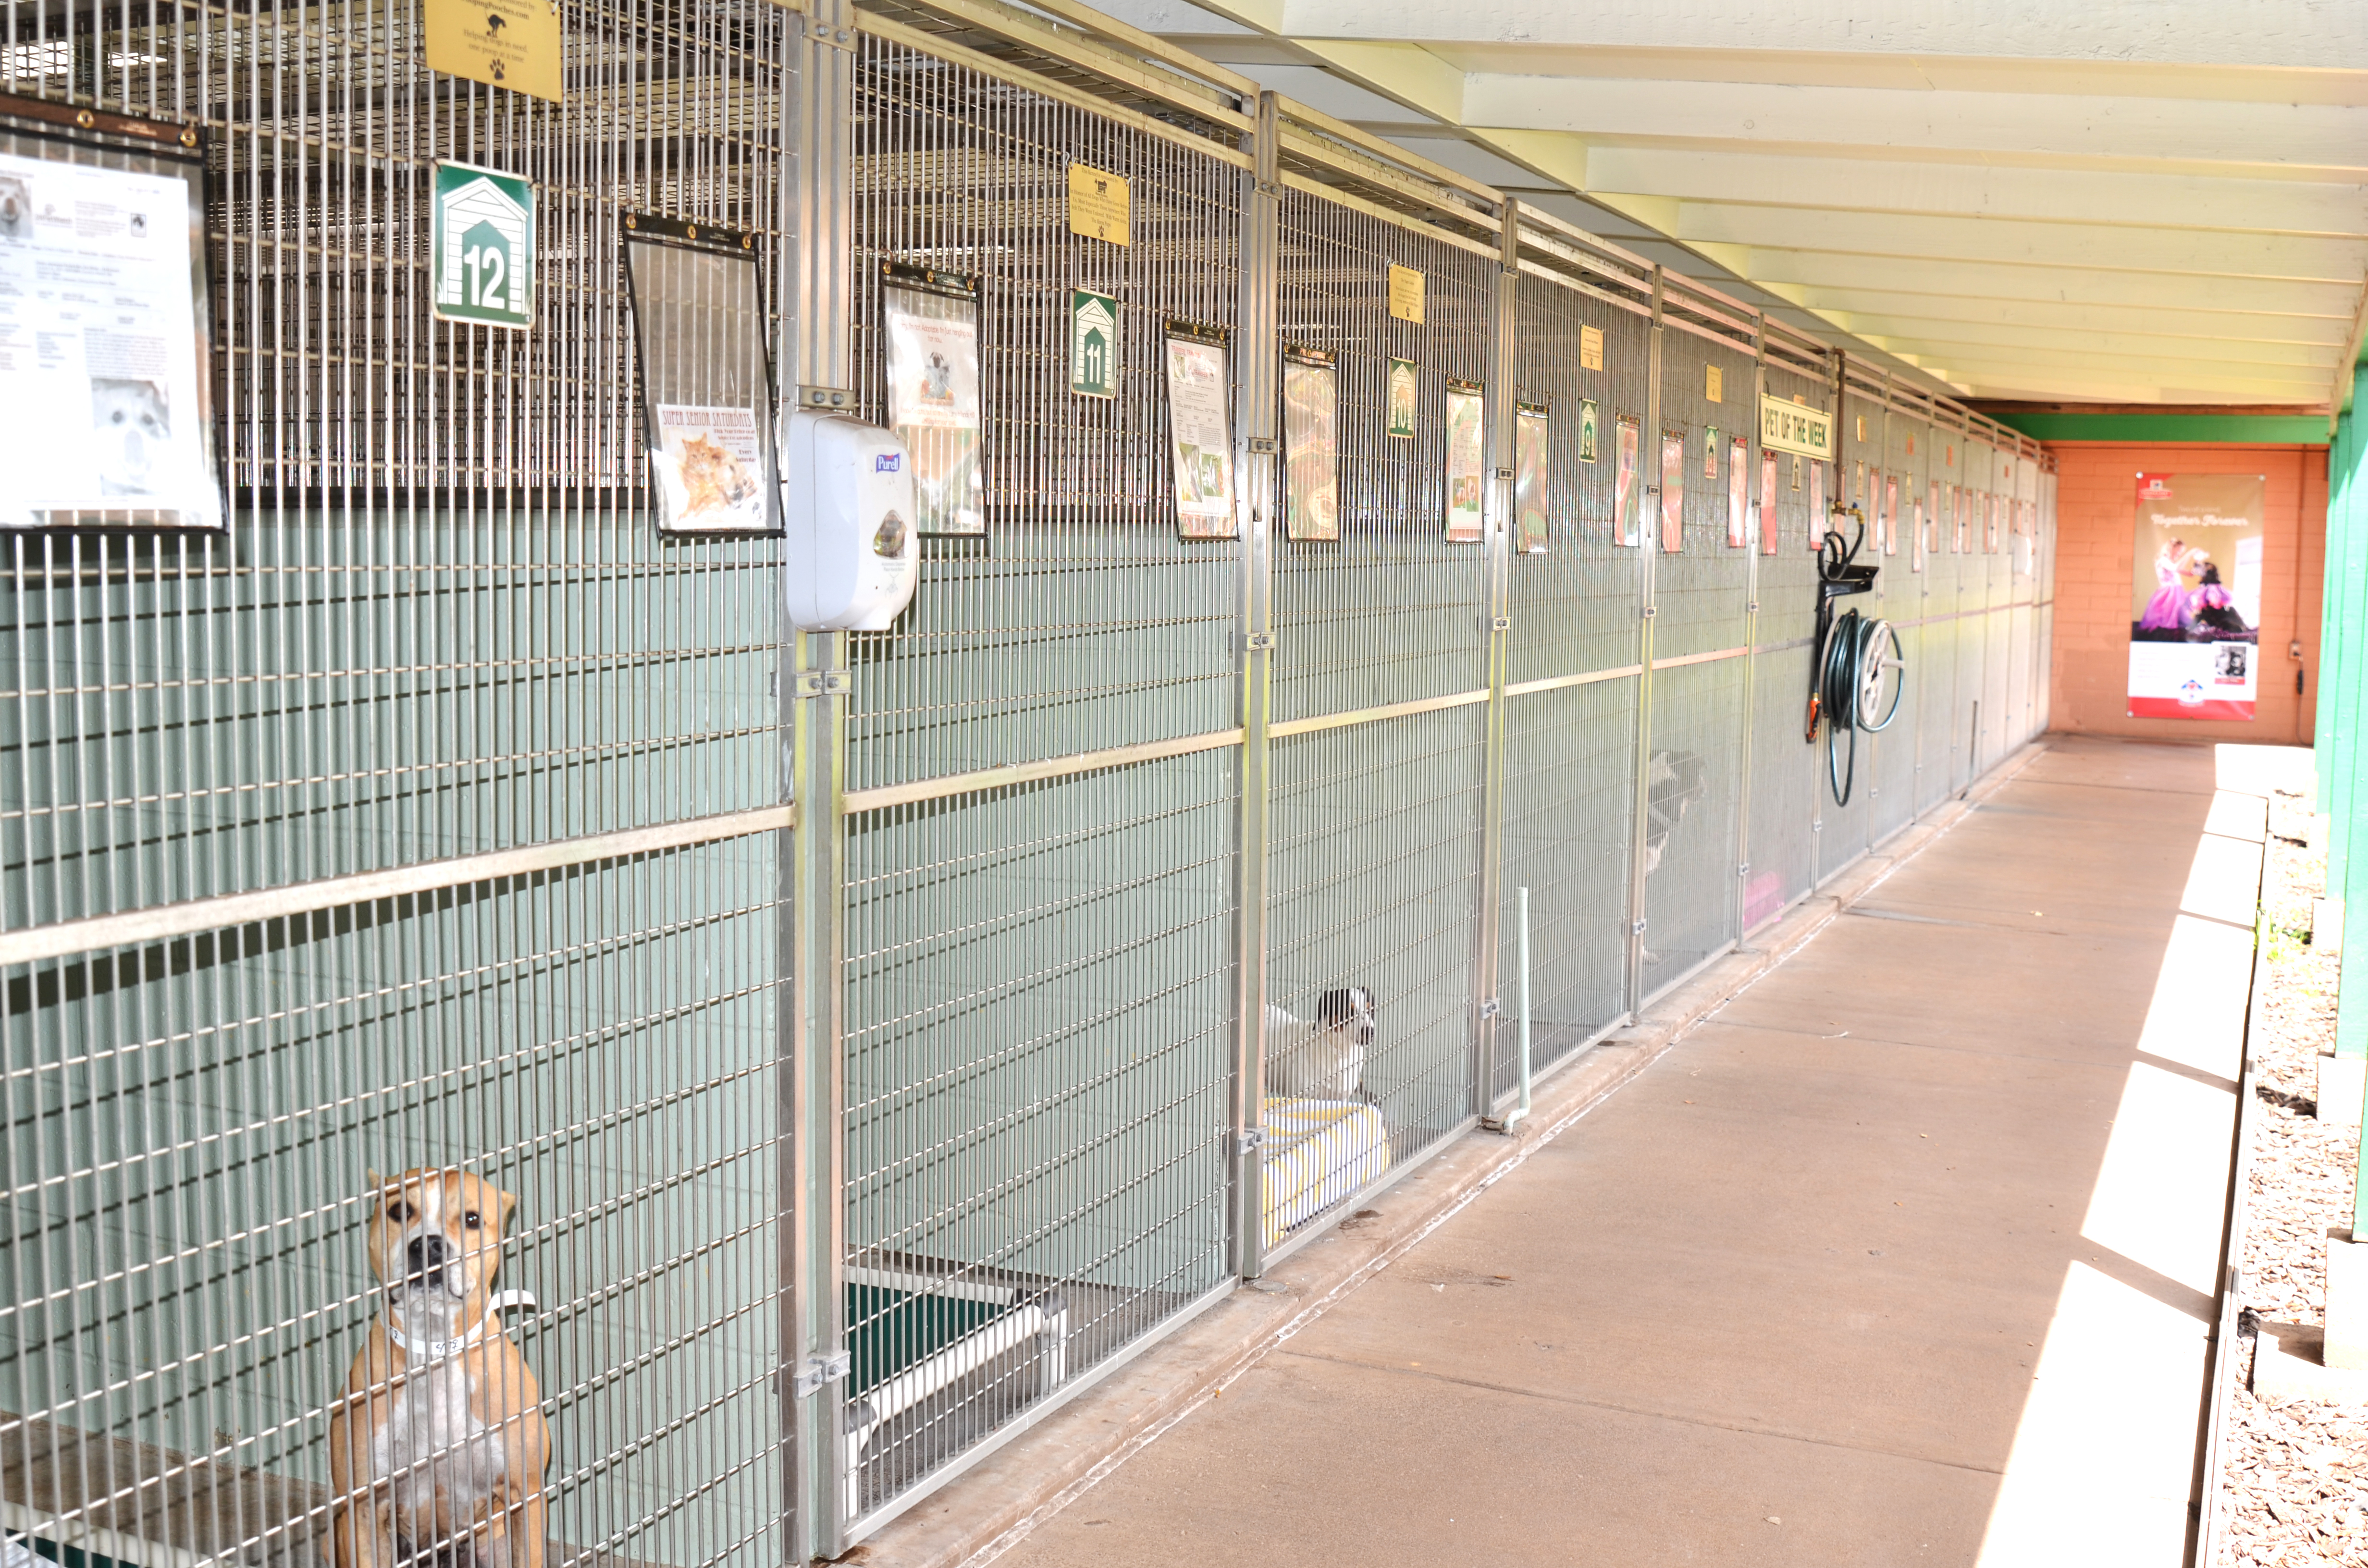 Maui Kennels Crowded, Foster Homes Needed for Dogs